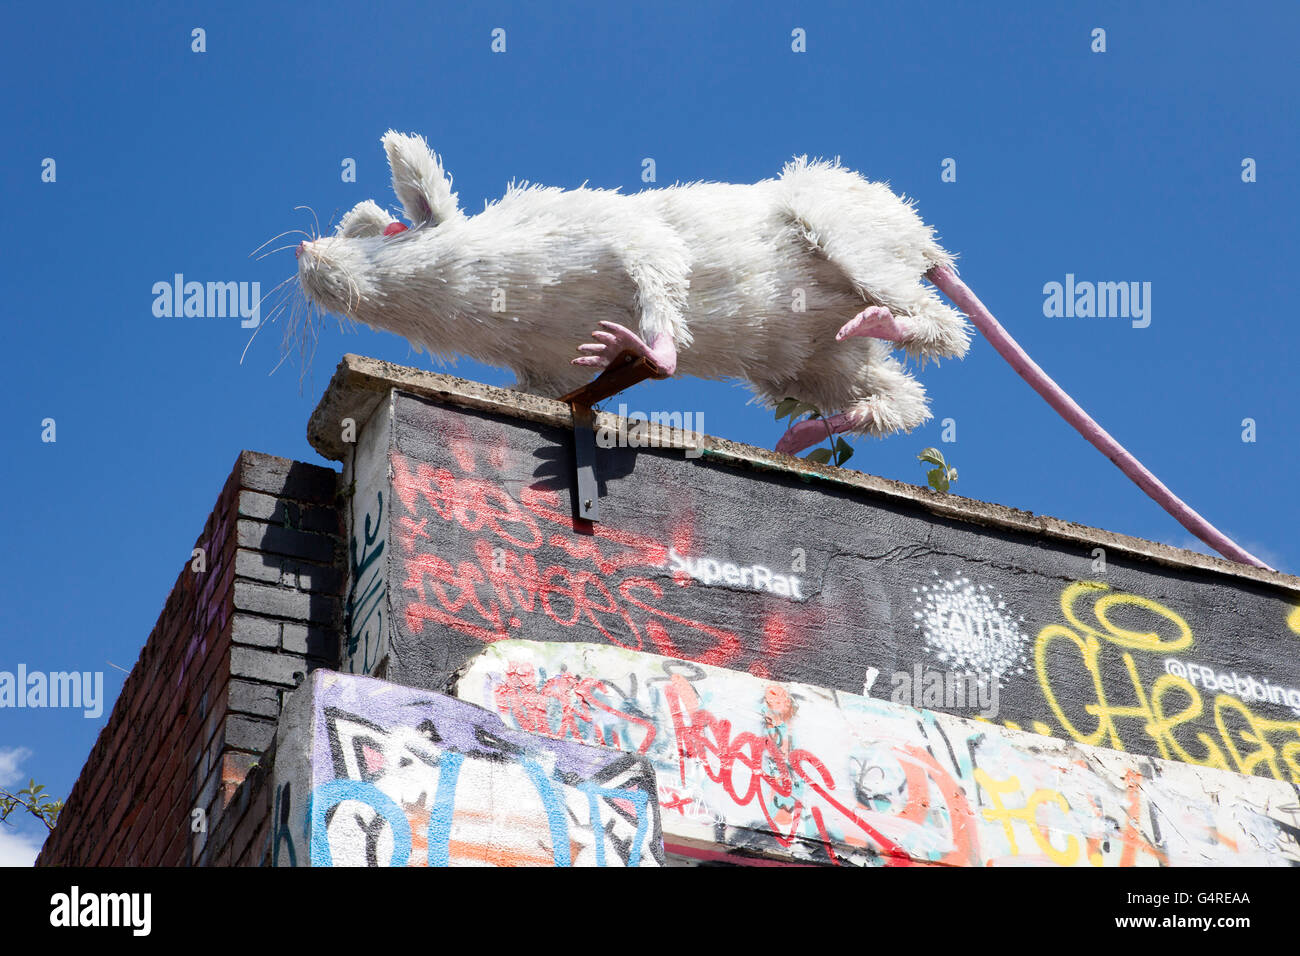 The 'Ratpack' art project on Liverpool's Gin Lane.  The rat sculpture is made from recycled plastic - Stock Image